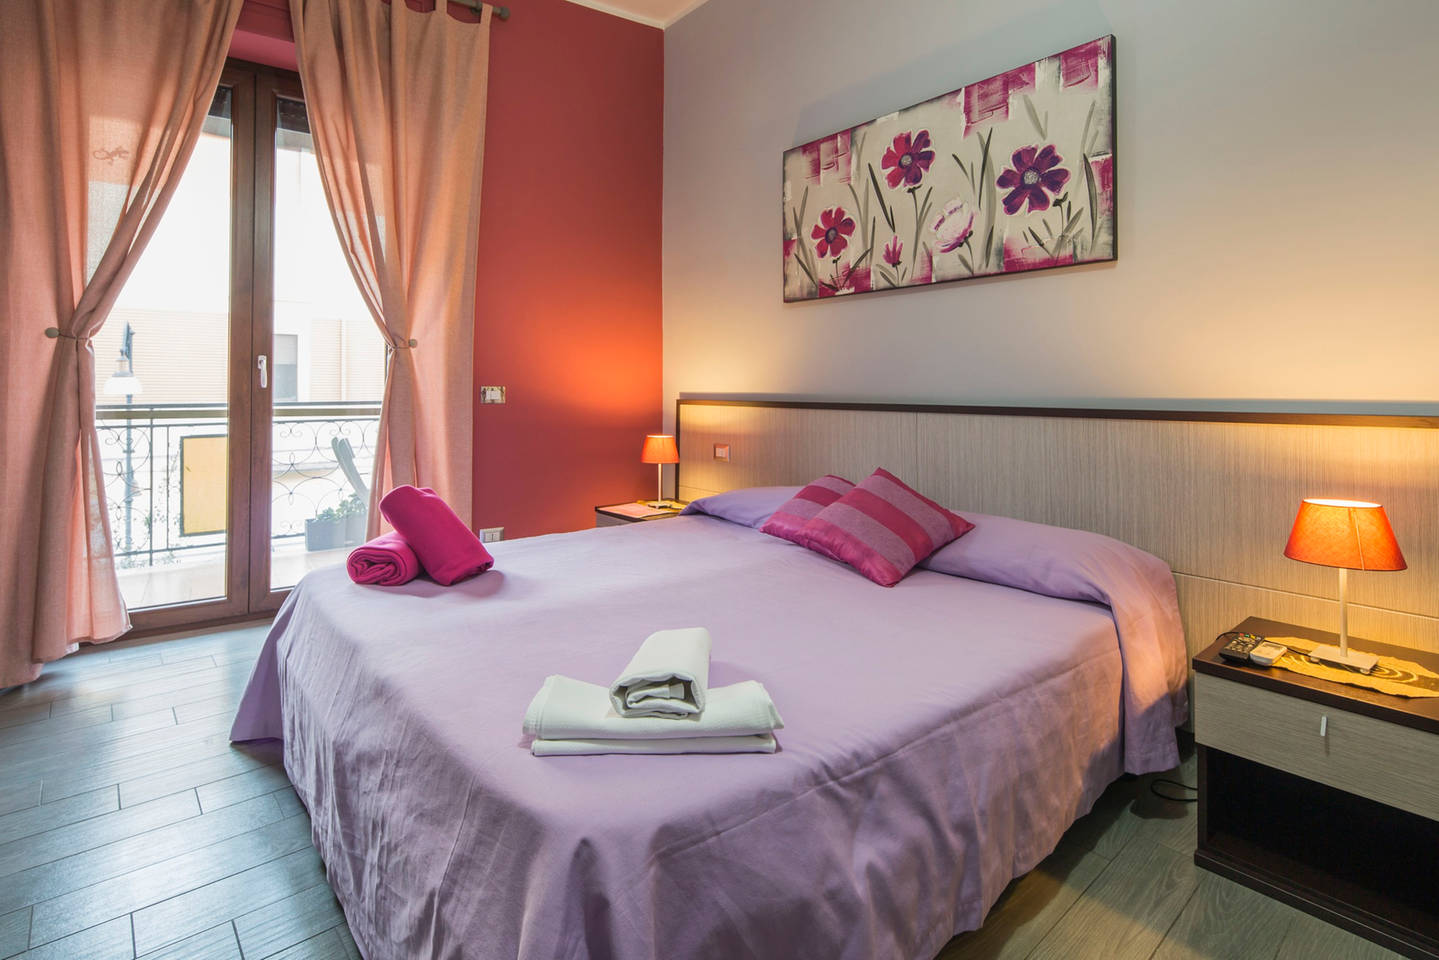 Bed and Breakfast Eco Pompei, quadruple pink room with balcony.